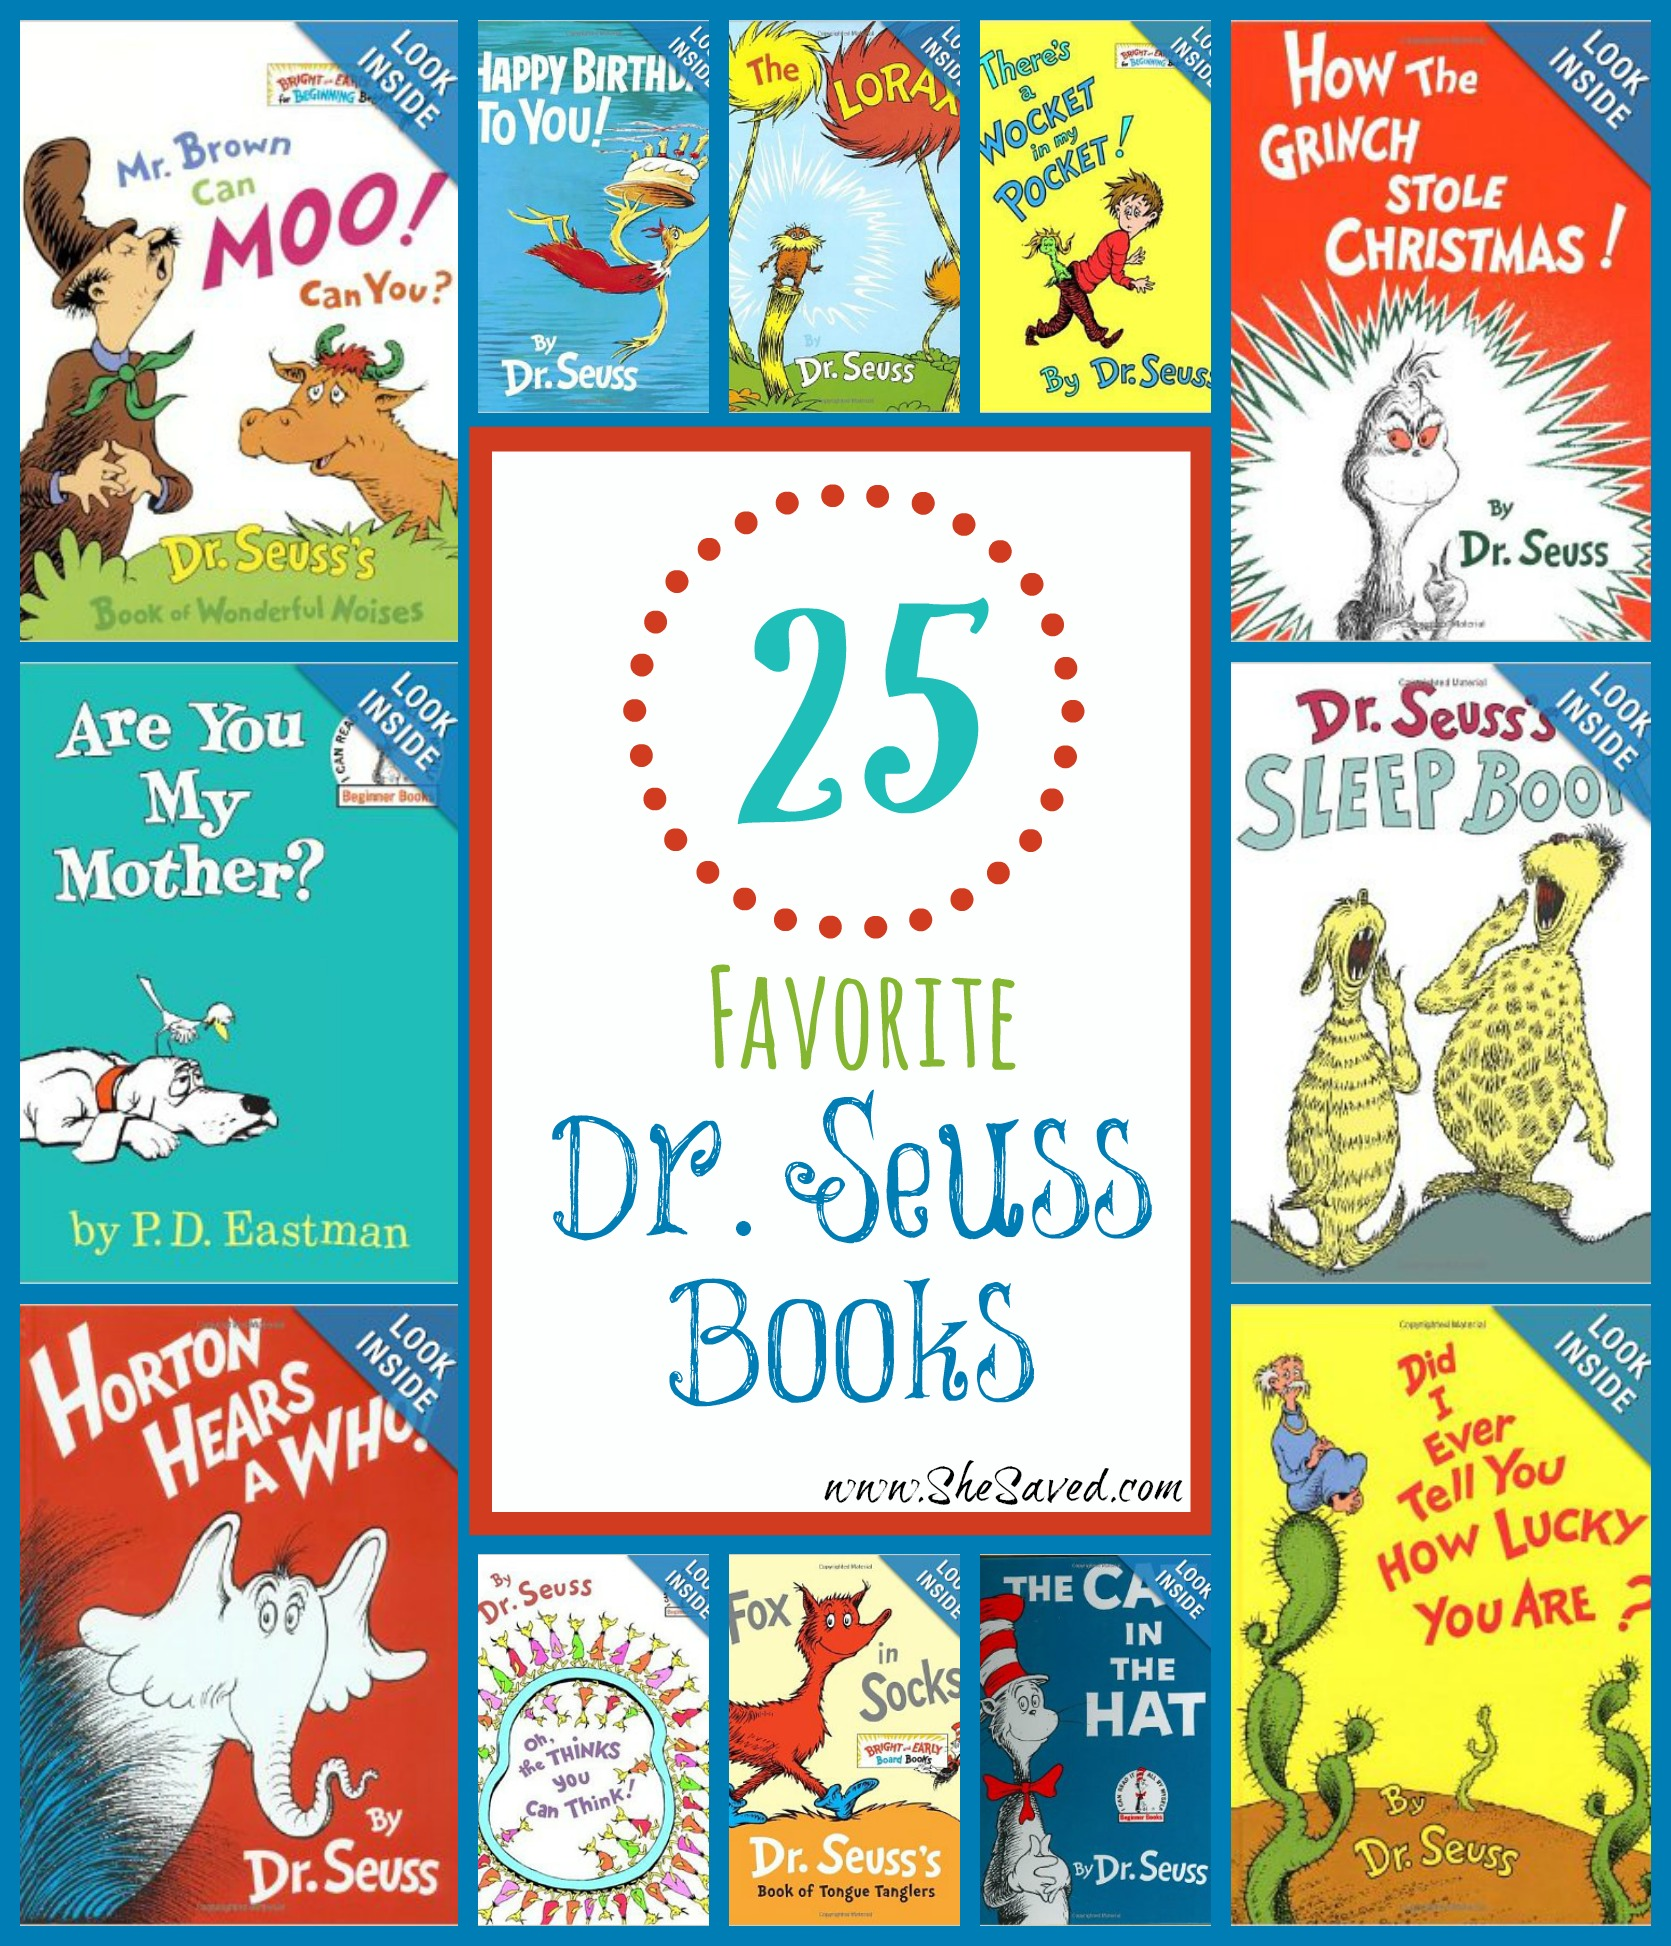 Our 25 Favorite Dr. Seuss Books!